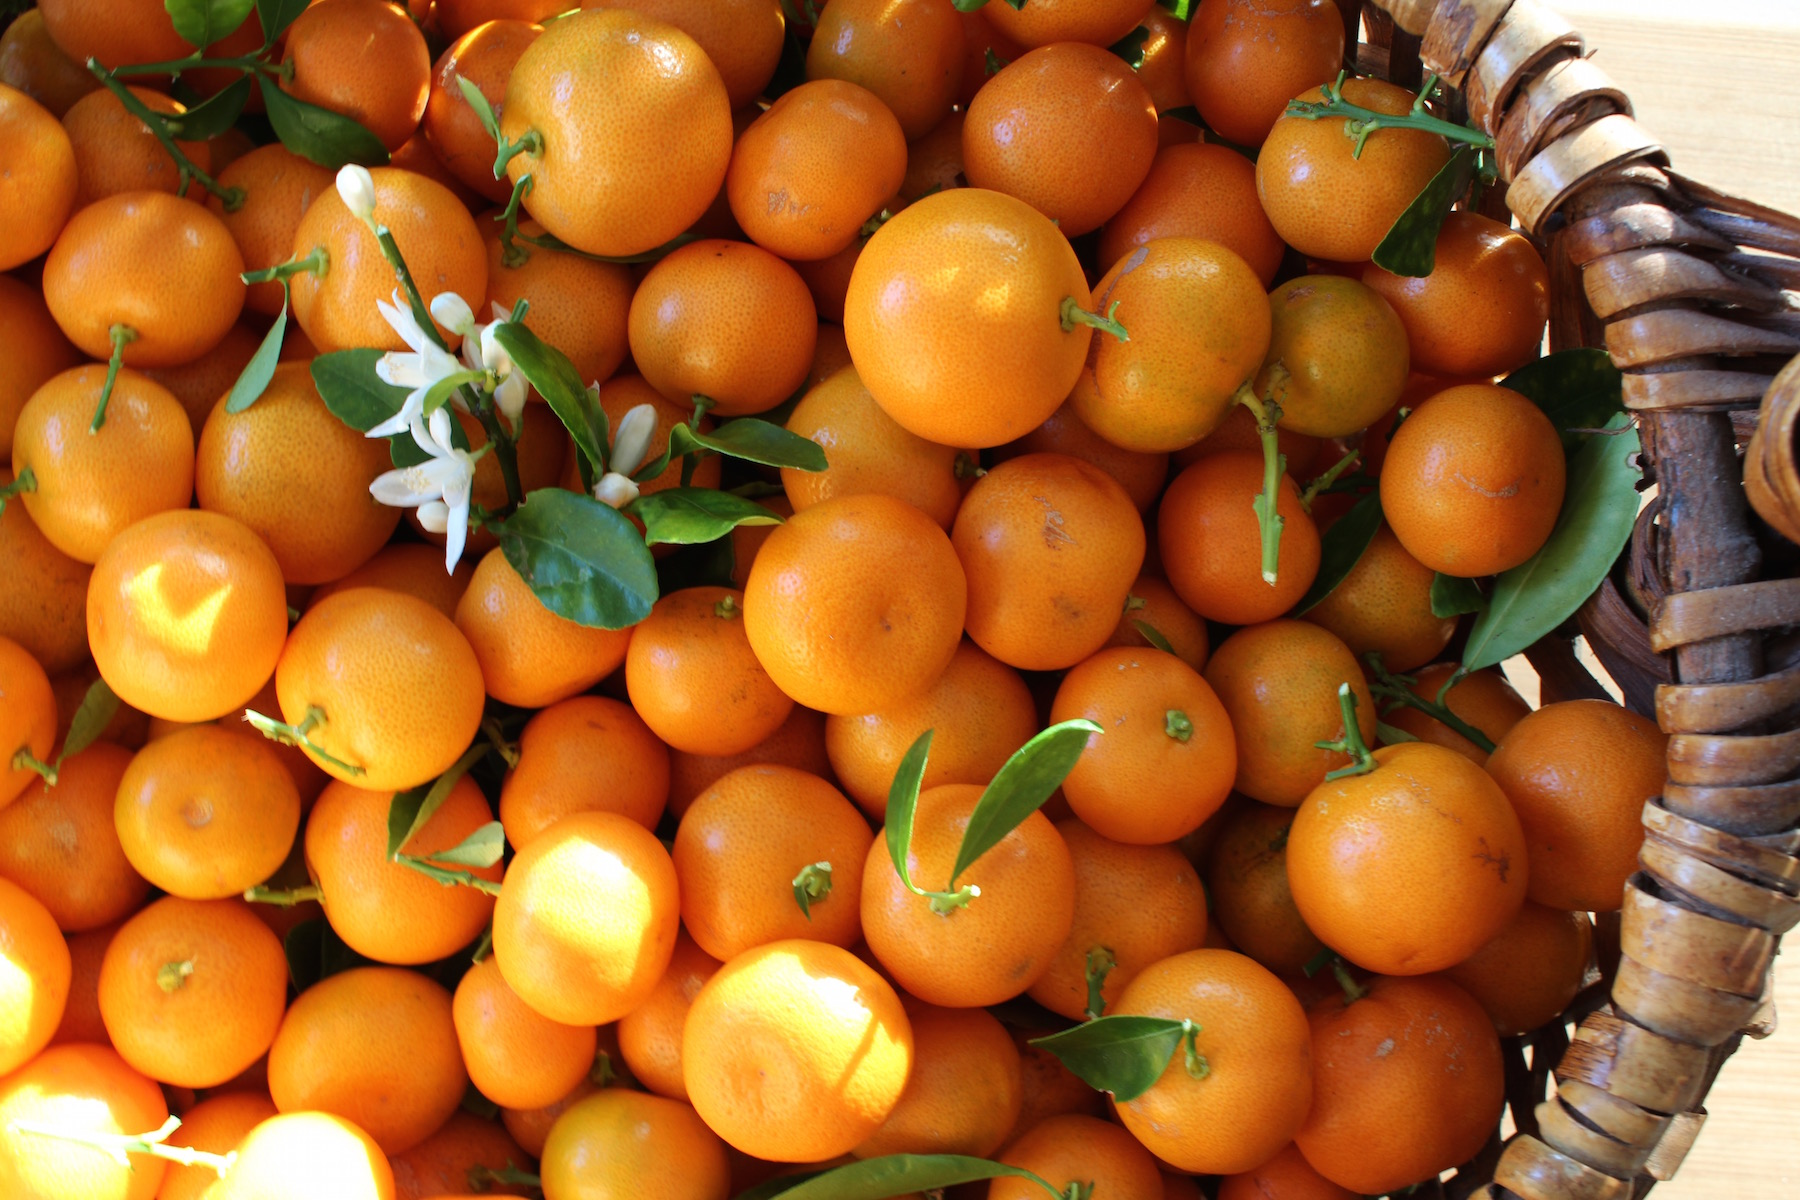 calamondins in basket